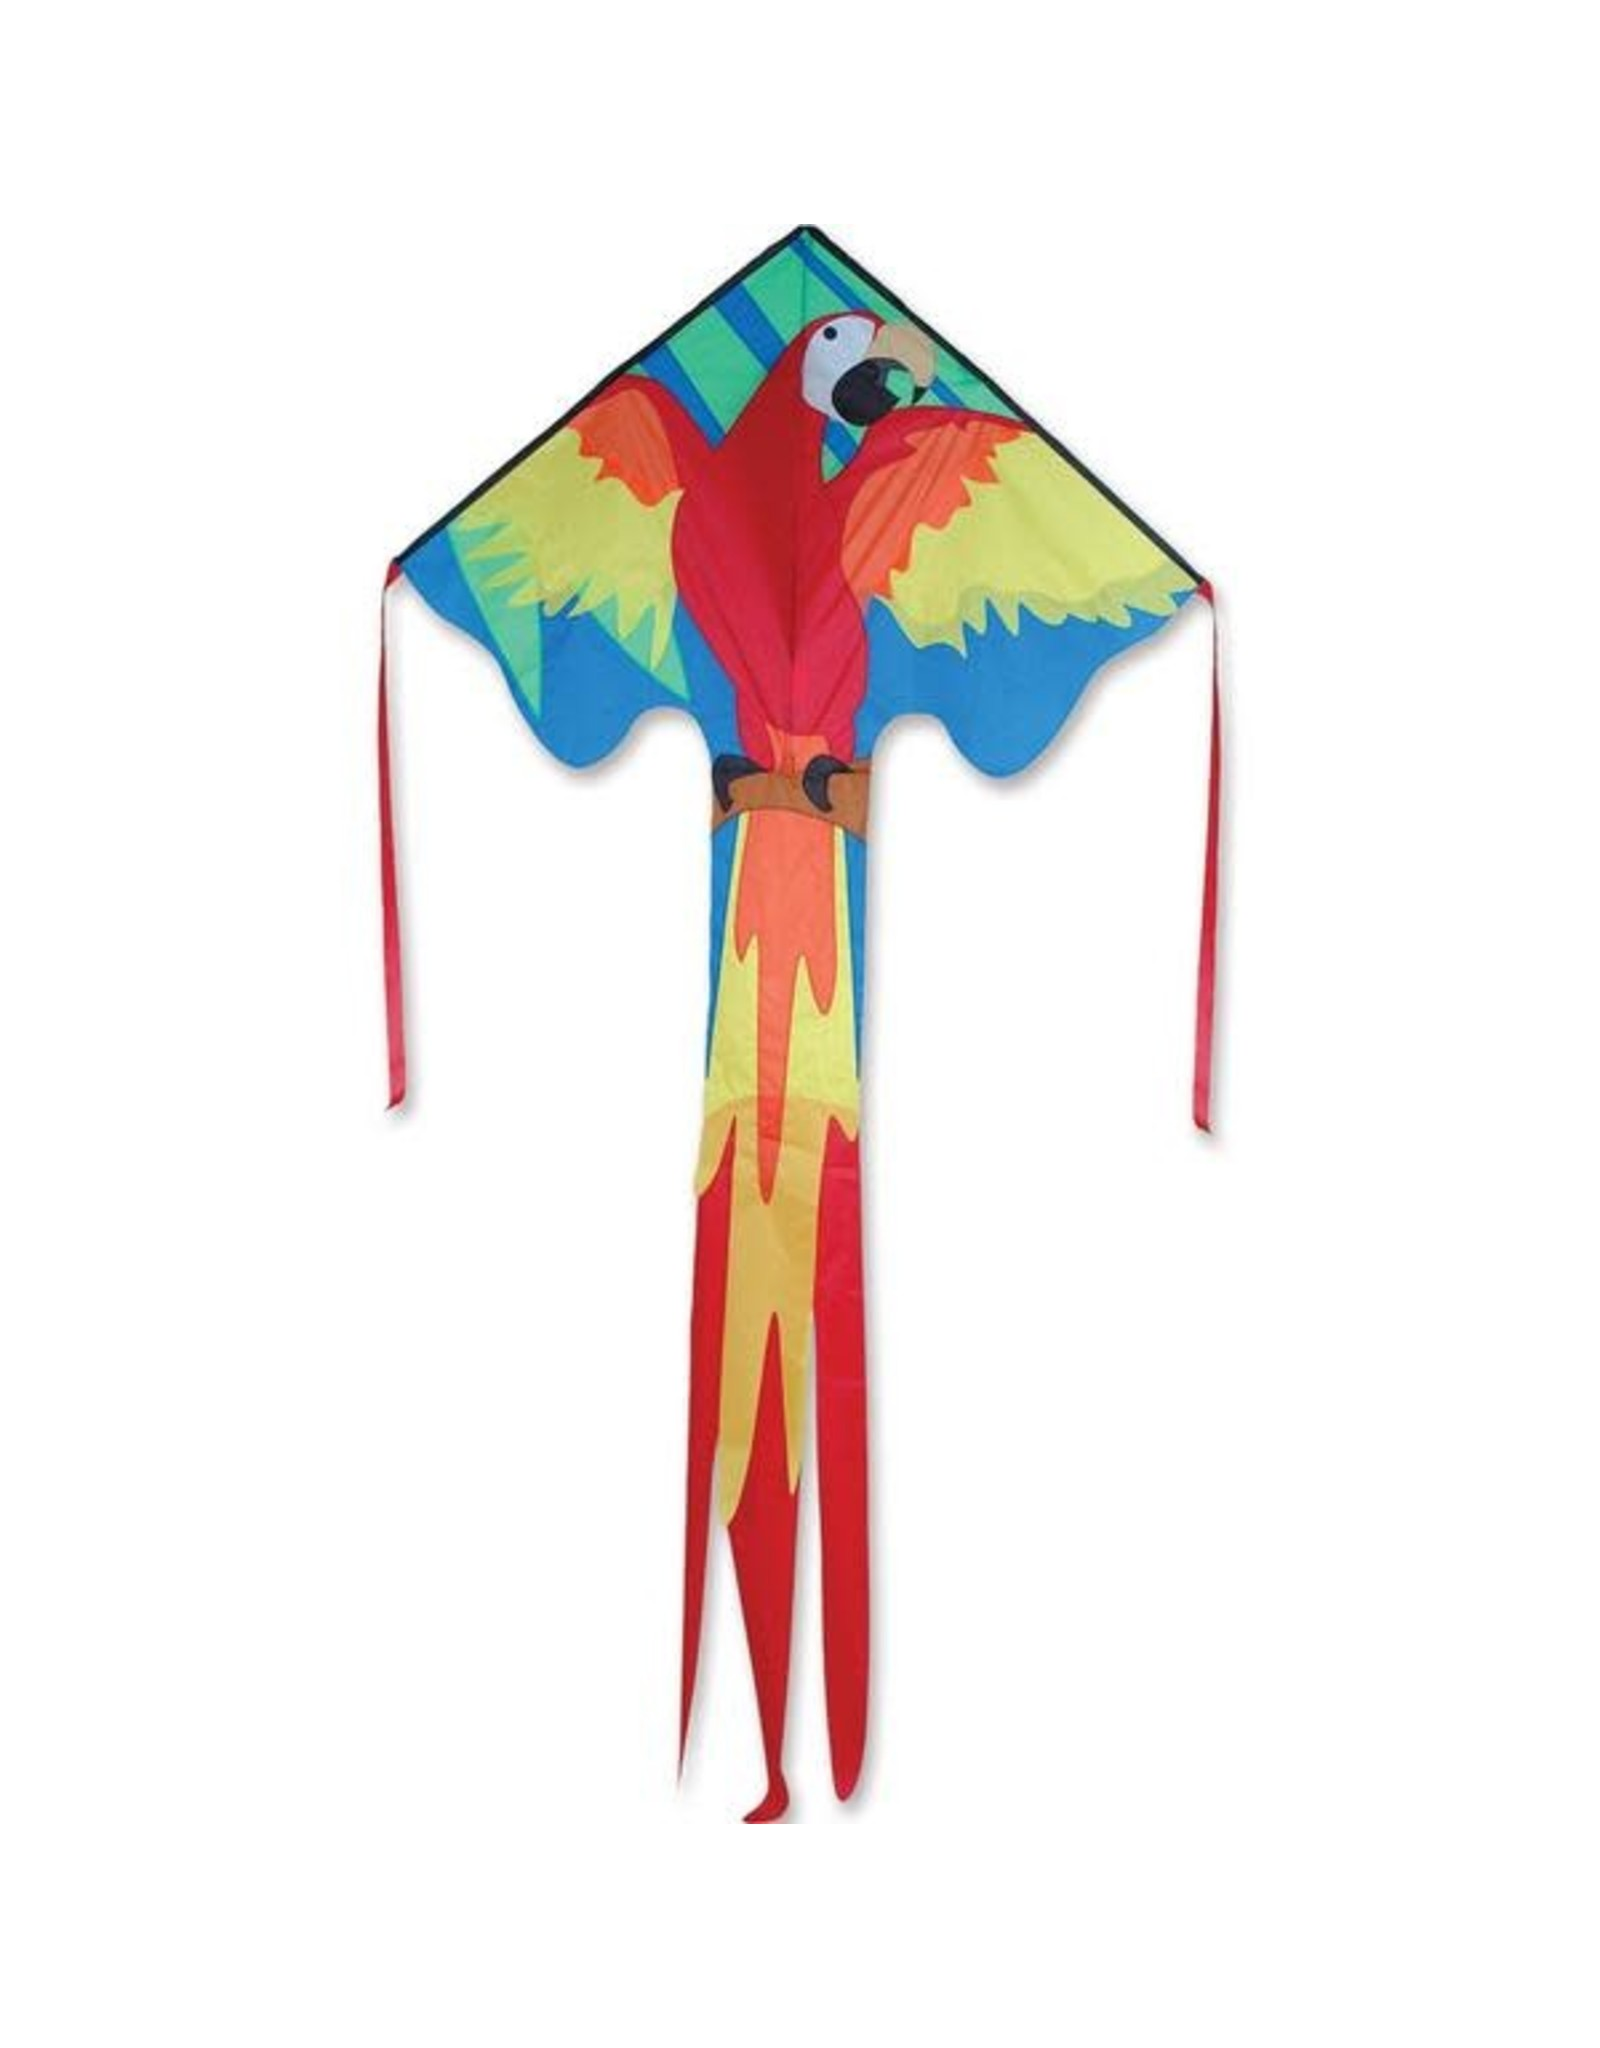 Premier Kites Large Easy Flyer Kite - Macaw